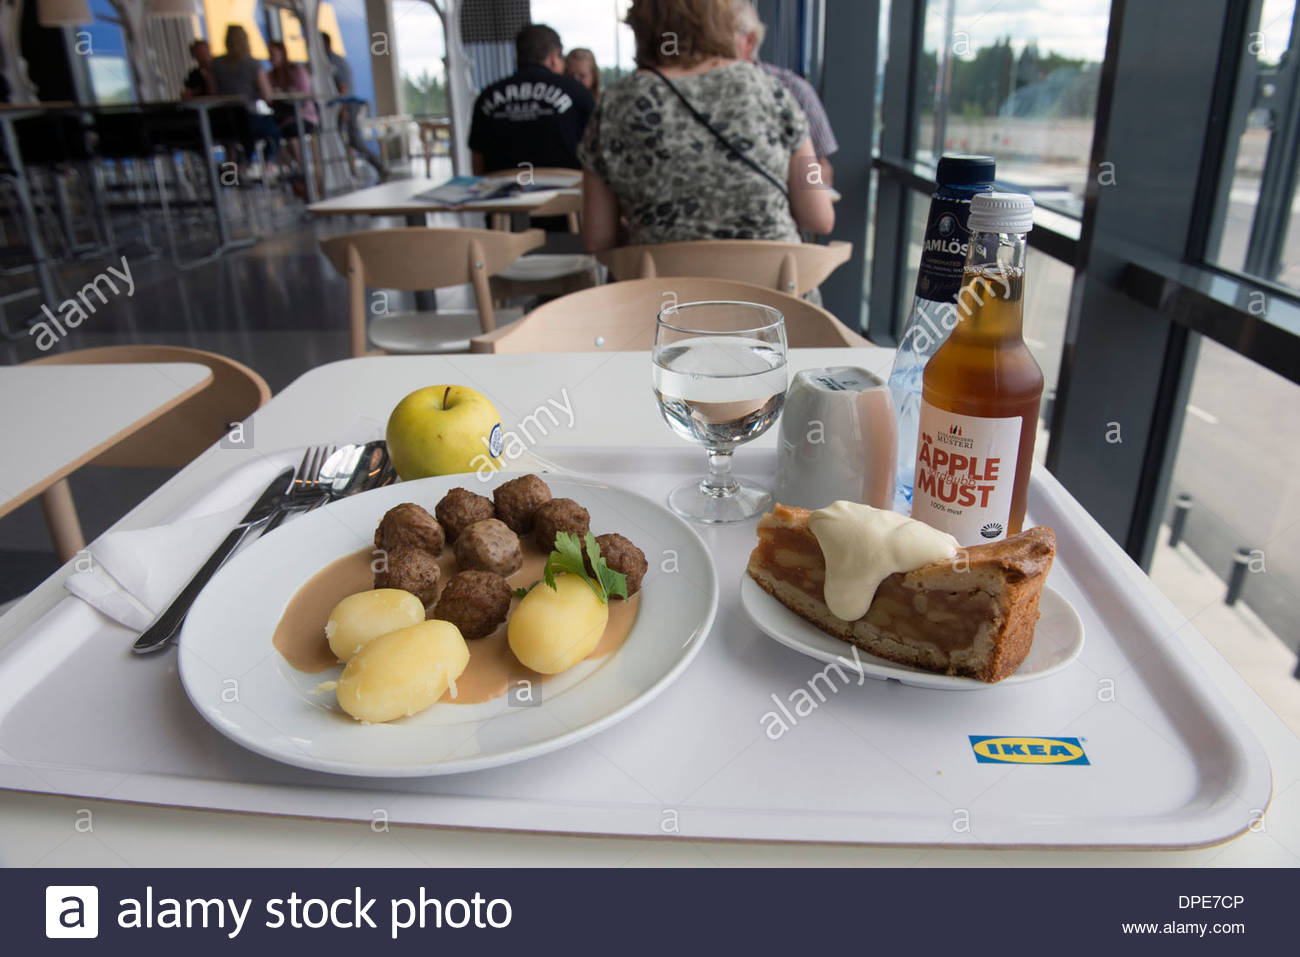 ikea,almhult,sweden - Stock Image